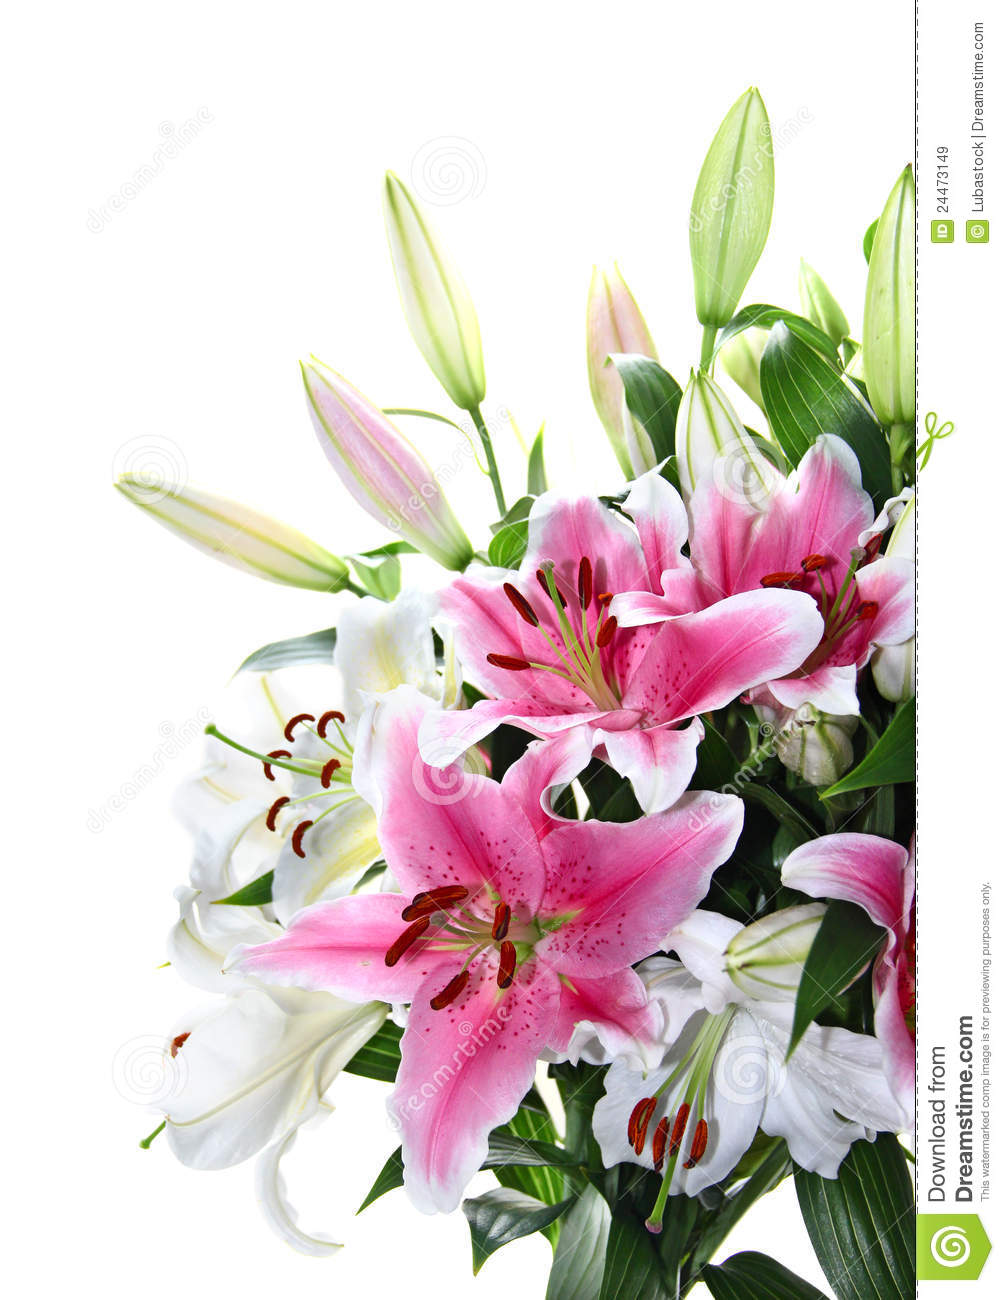 Pink And White Lily Bouquet Closeup Stock Image - Image ...